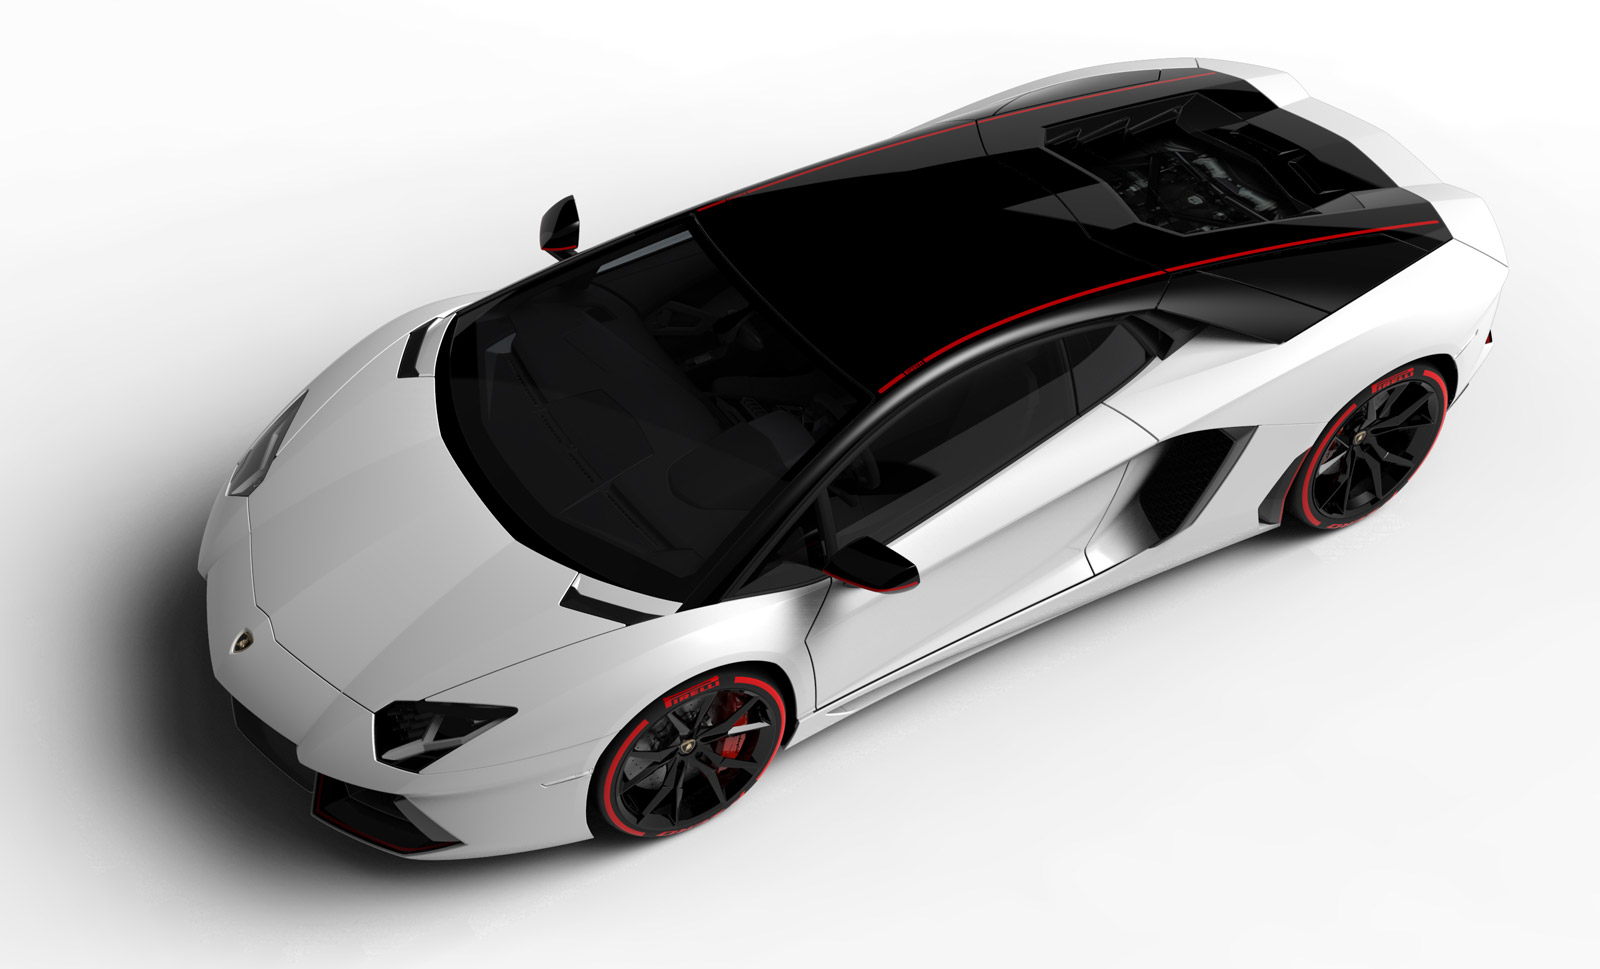 2015 Lamborghini Aventador Review, Ratings, Specs, Prices, and ... on lamborghini diablo, lamborghini egoista, lamborghini veneno, mercedes slr mclaren roadster, murcielago roadster, pagani zonda roadster, lamborghini reventon, lamborghini sesto elemento, lamborghini gallardo roadster, nissan 370z roadster, zonda f roadster, lamborghini huracan, lamborghini estoque, lexus lfa roadster, lamborghini miura, lamborghini murcielago, mercedes sls amg roadster, lamborghini countach, bugatti roadster, lamborghini replica,